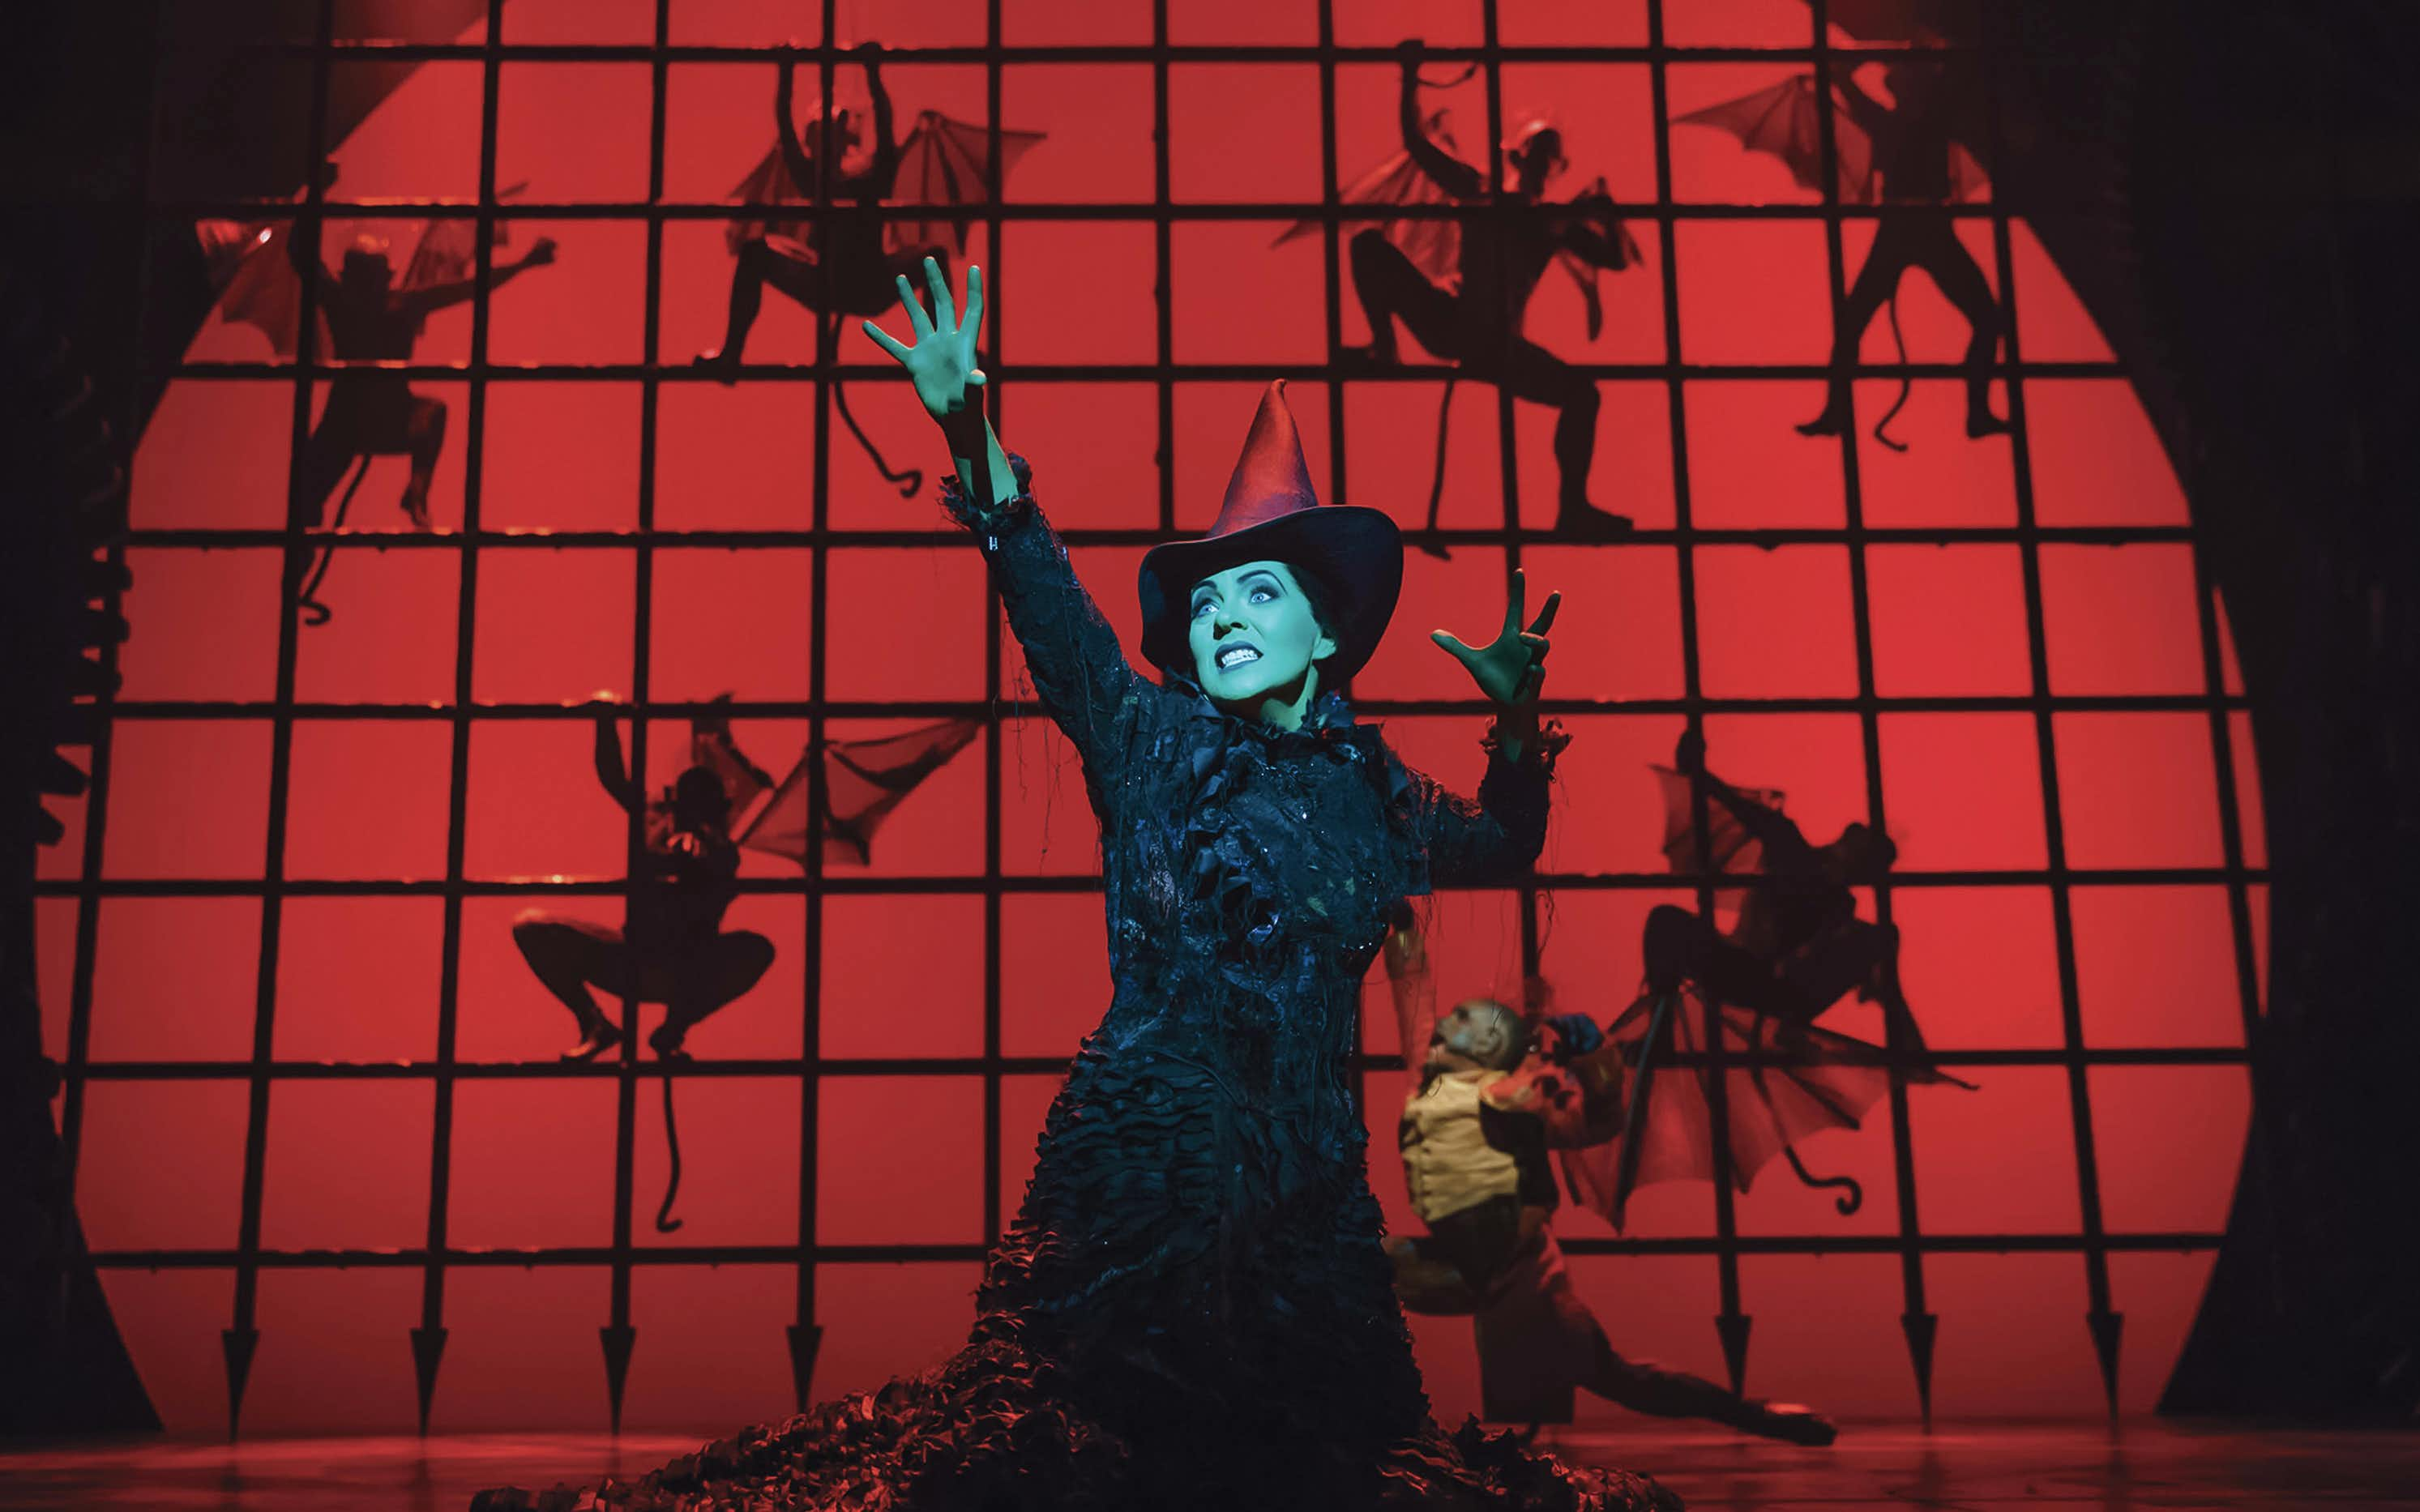 Wicked surpasses Les Miserables